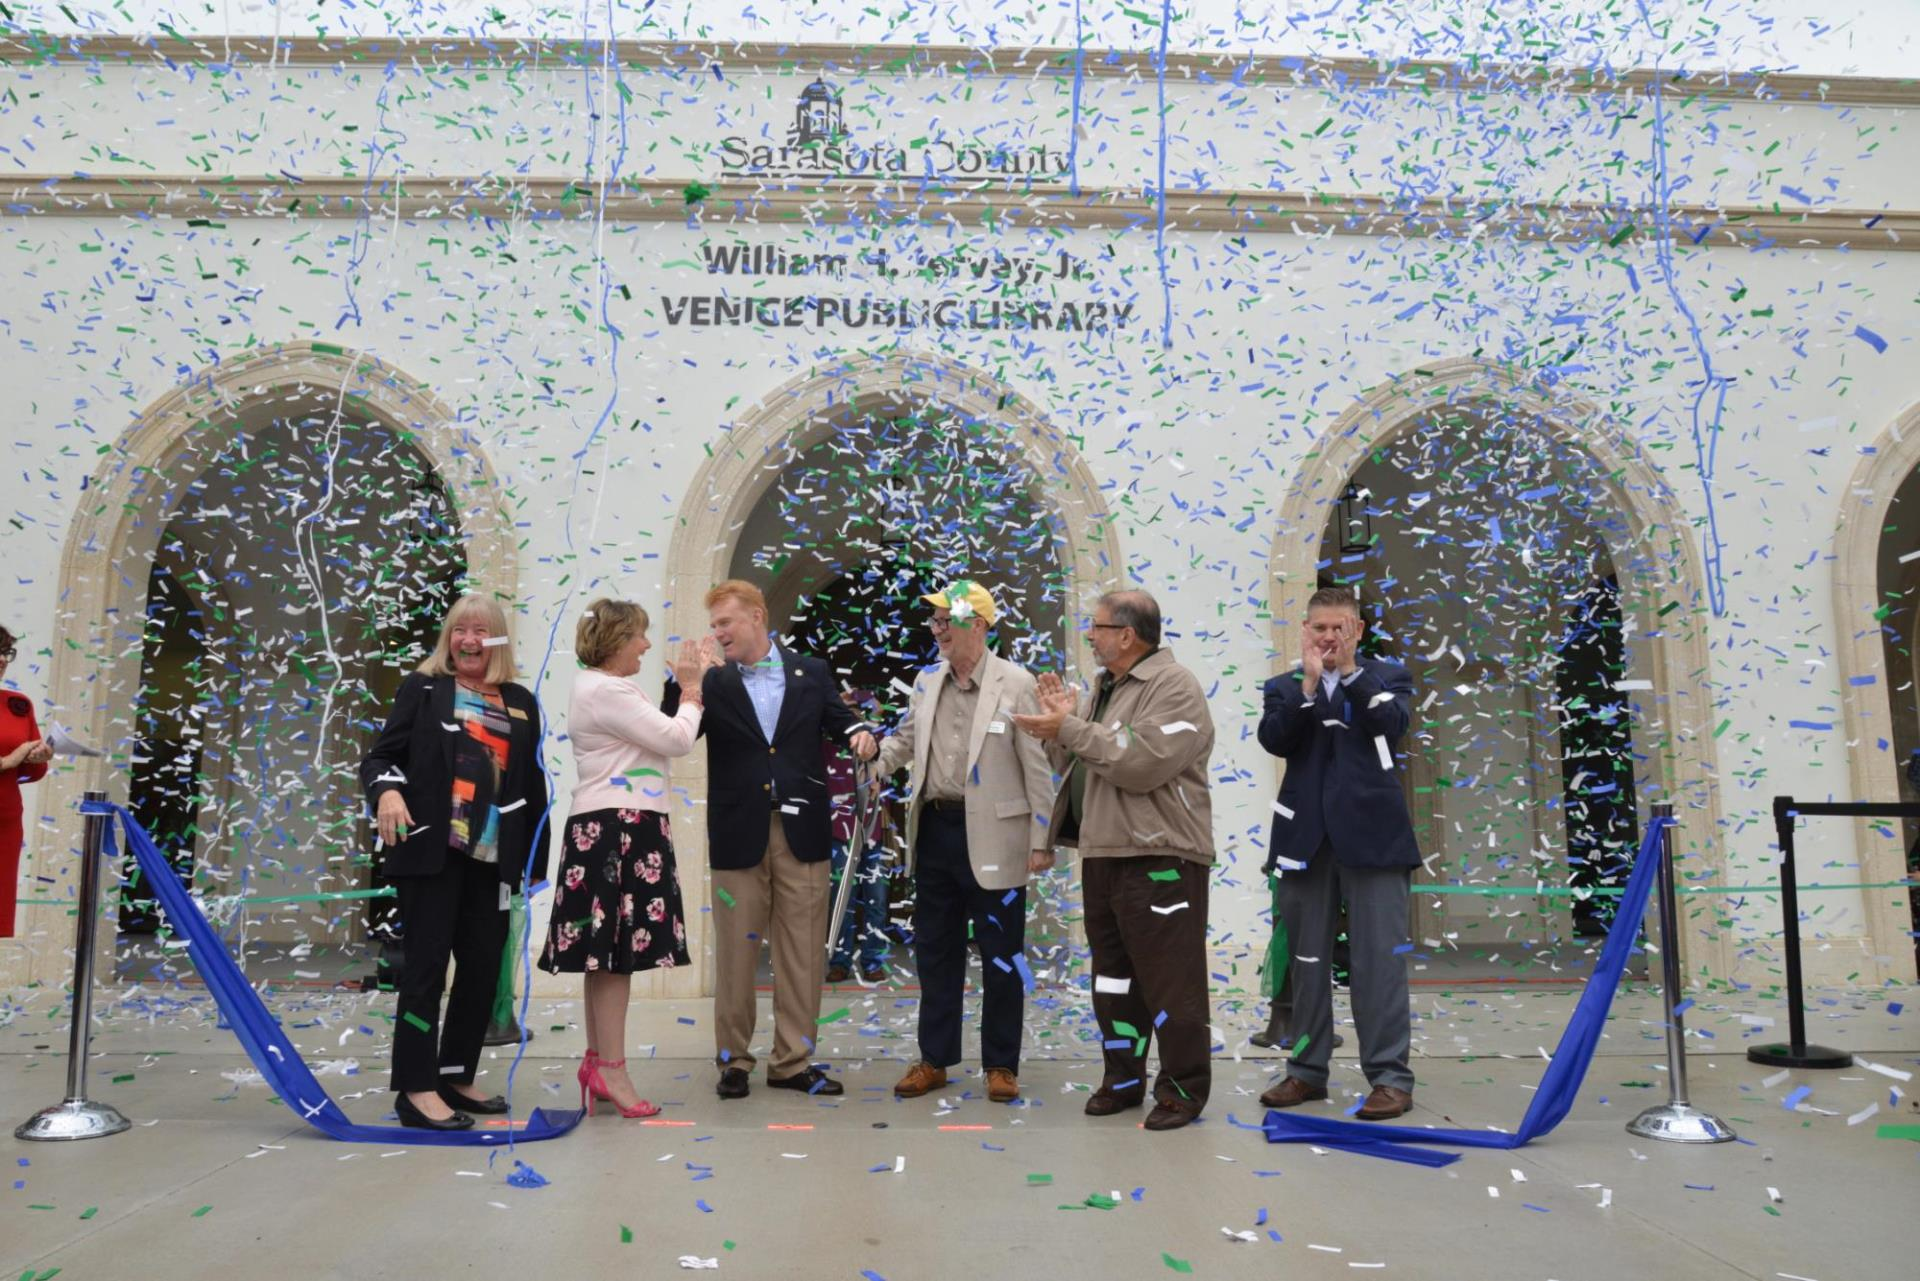 Confetti fills the area as key leaders cut the ribbon, officially opening the William H. Jervey Jr. Venice Public Library Dec. 15, 2018.